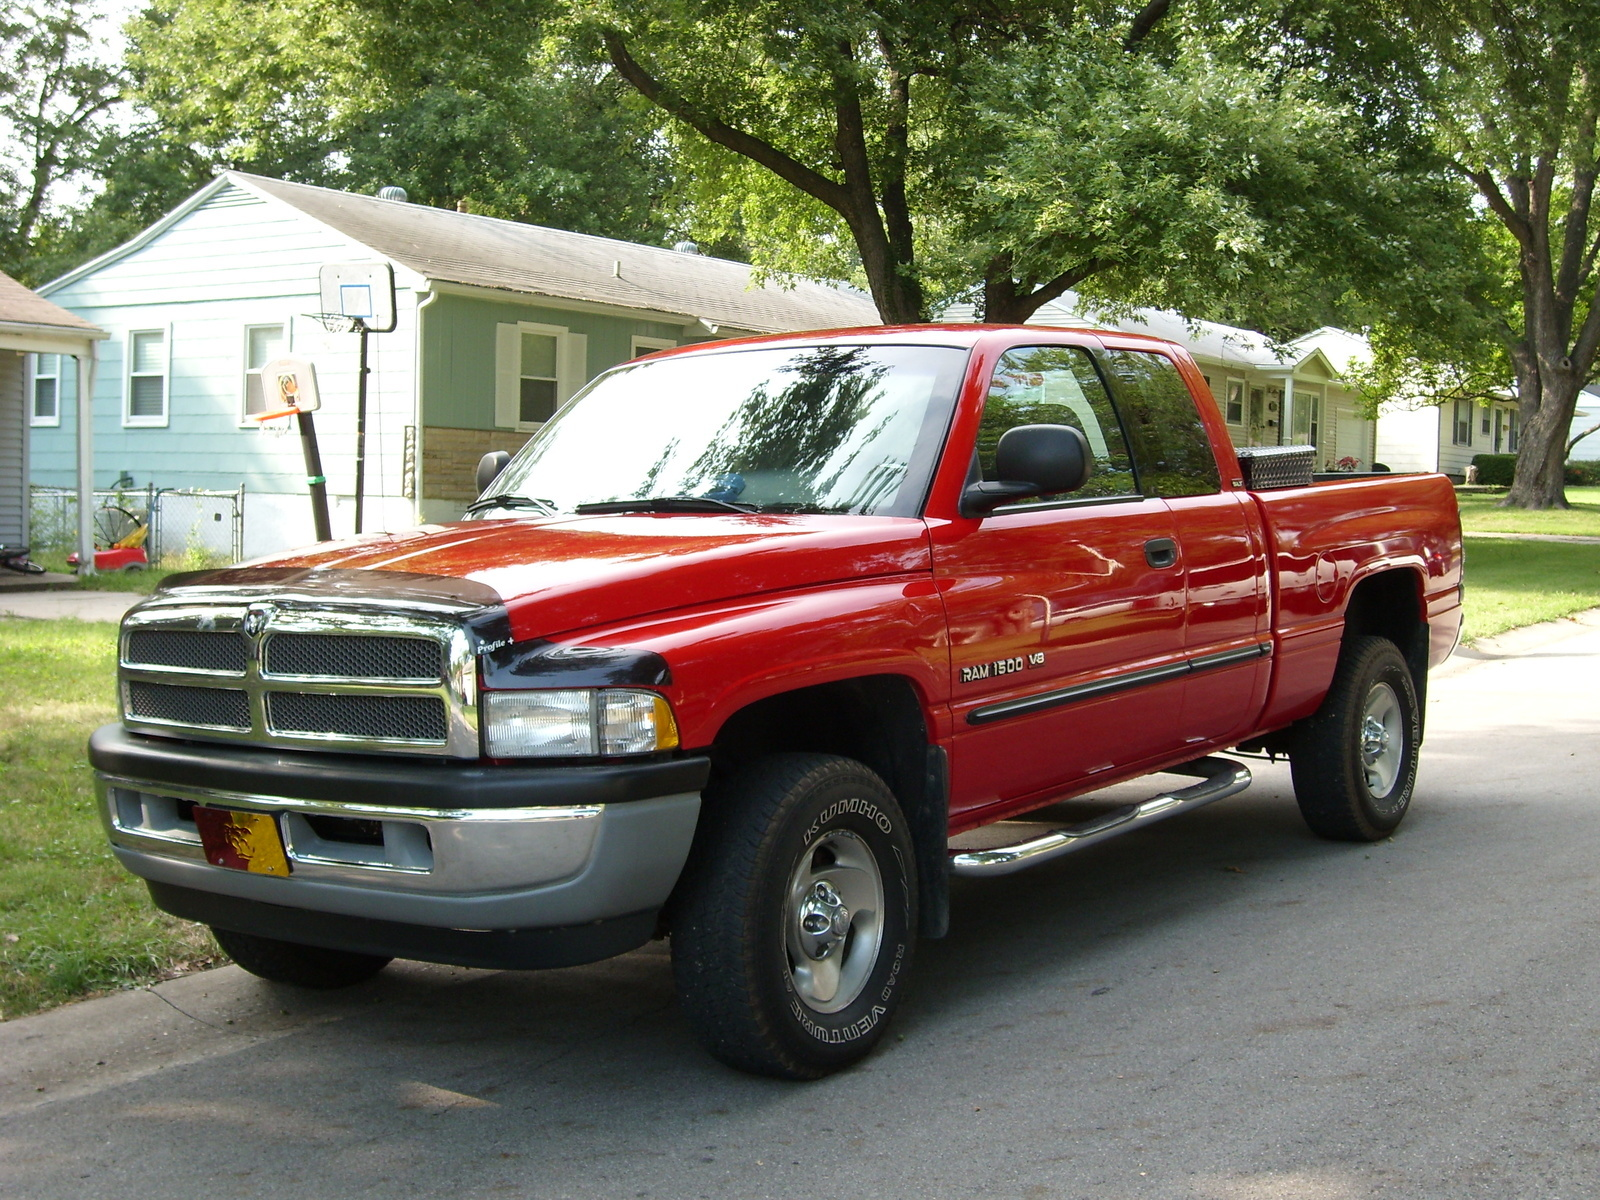 Picture of 2001 dodge ram 1500 4 dr slt plus 4wd quad cab lb exterior